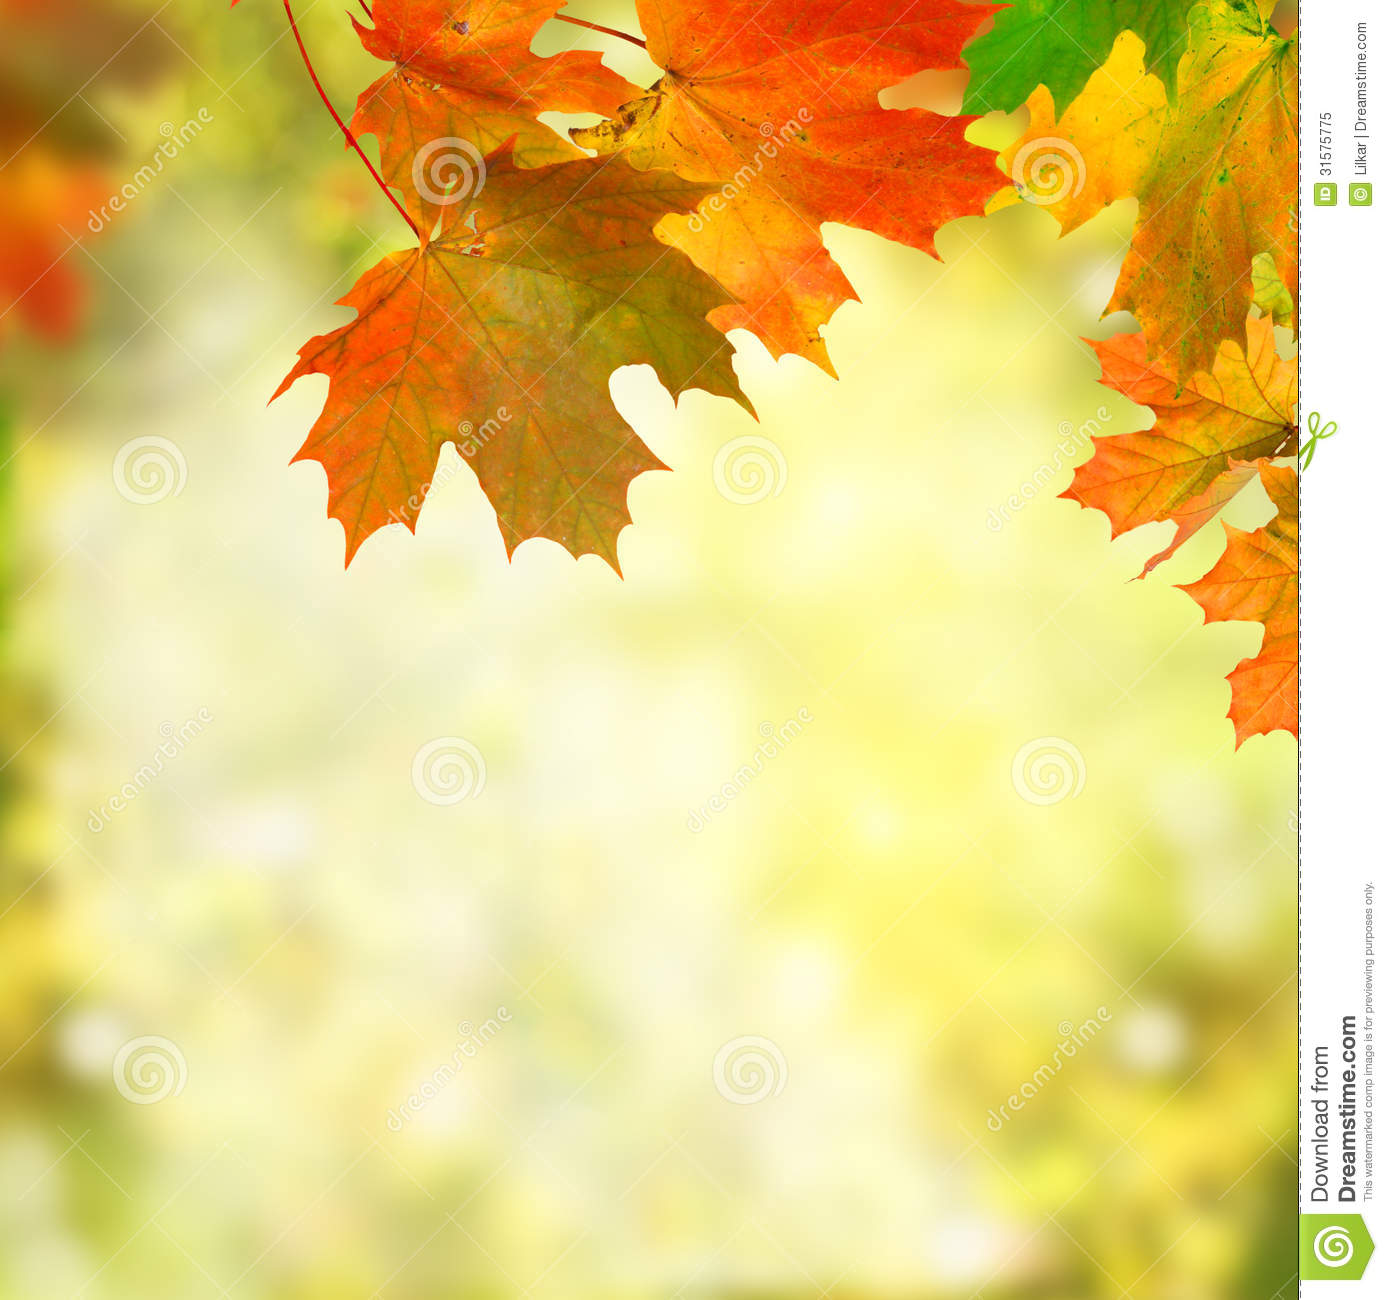 Autumn Background - HDWPlan